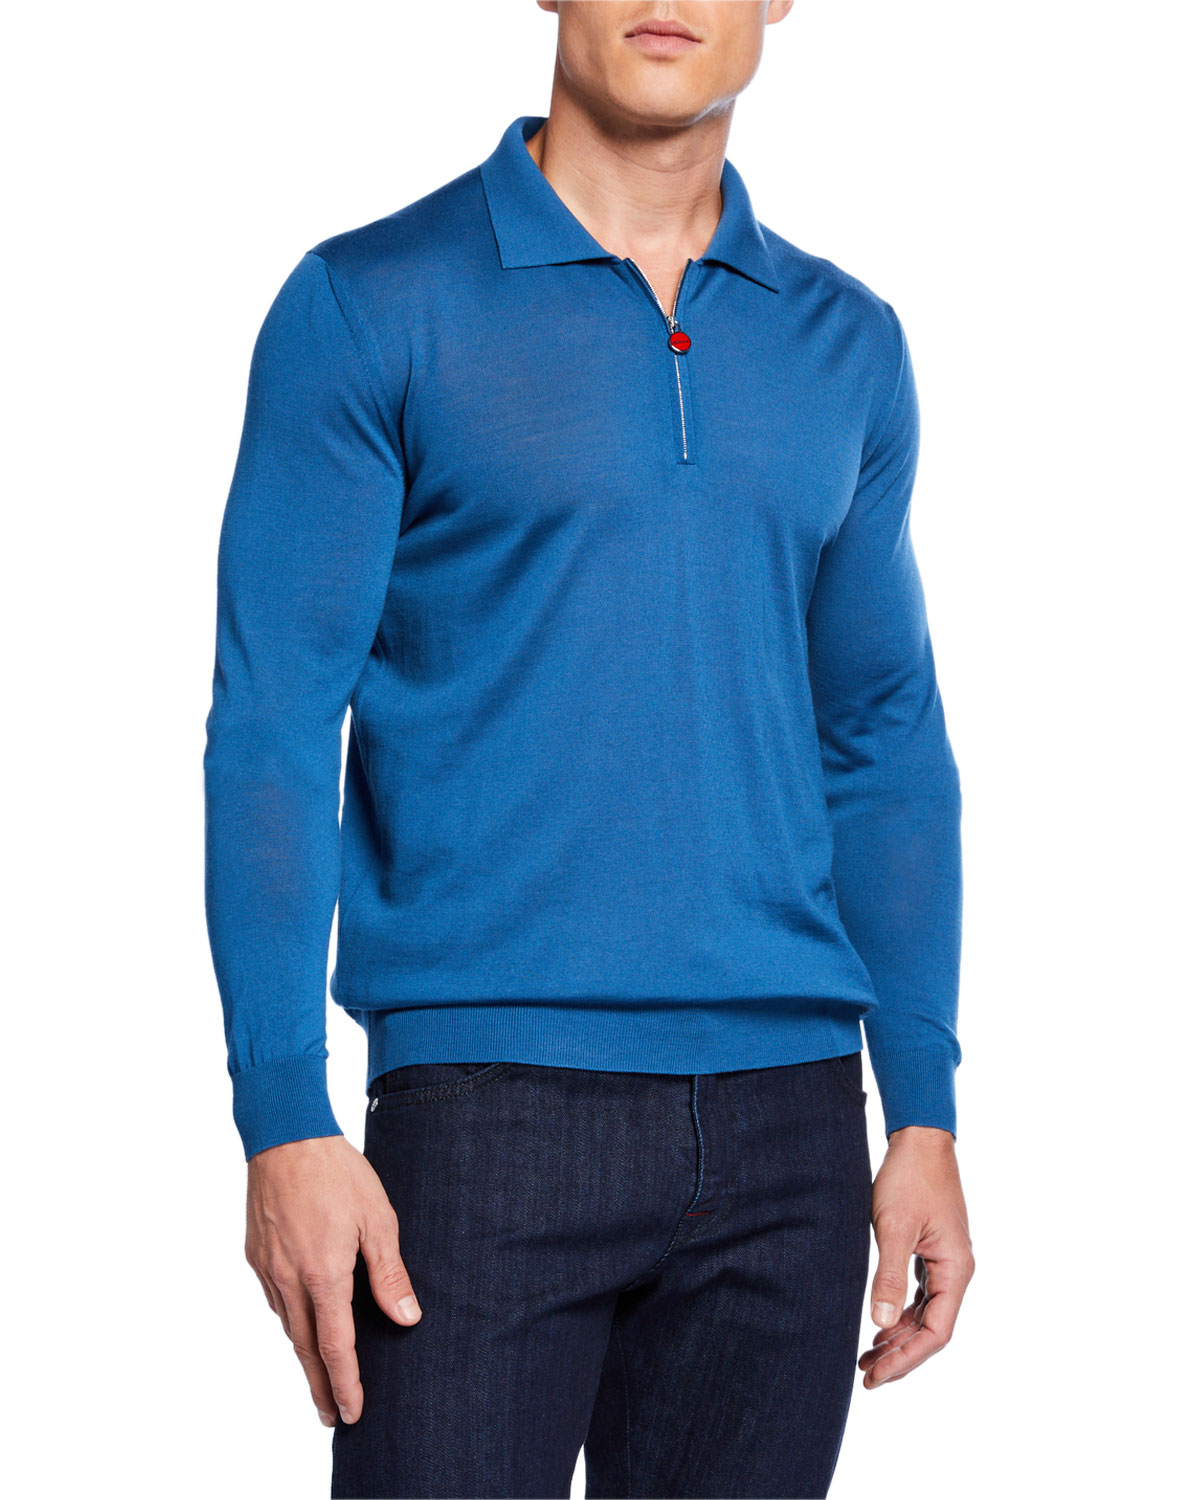 Kiton T-shirts MEN'S LONG-SLEEVE ZIP POLO SHIRT